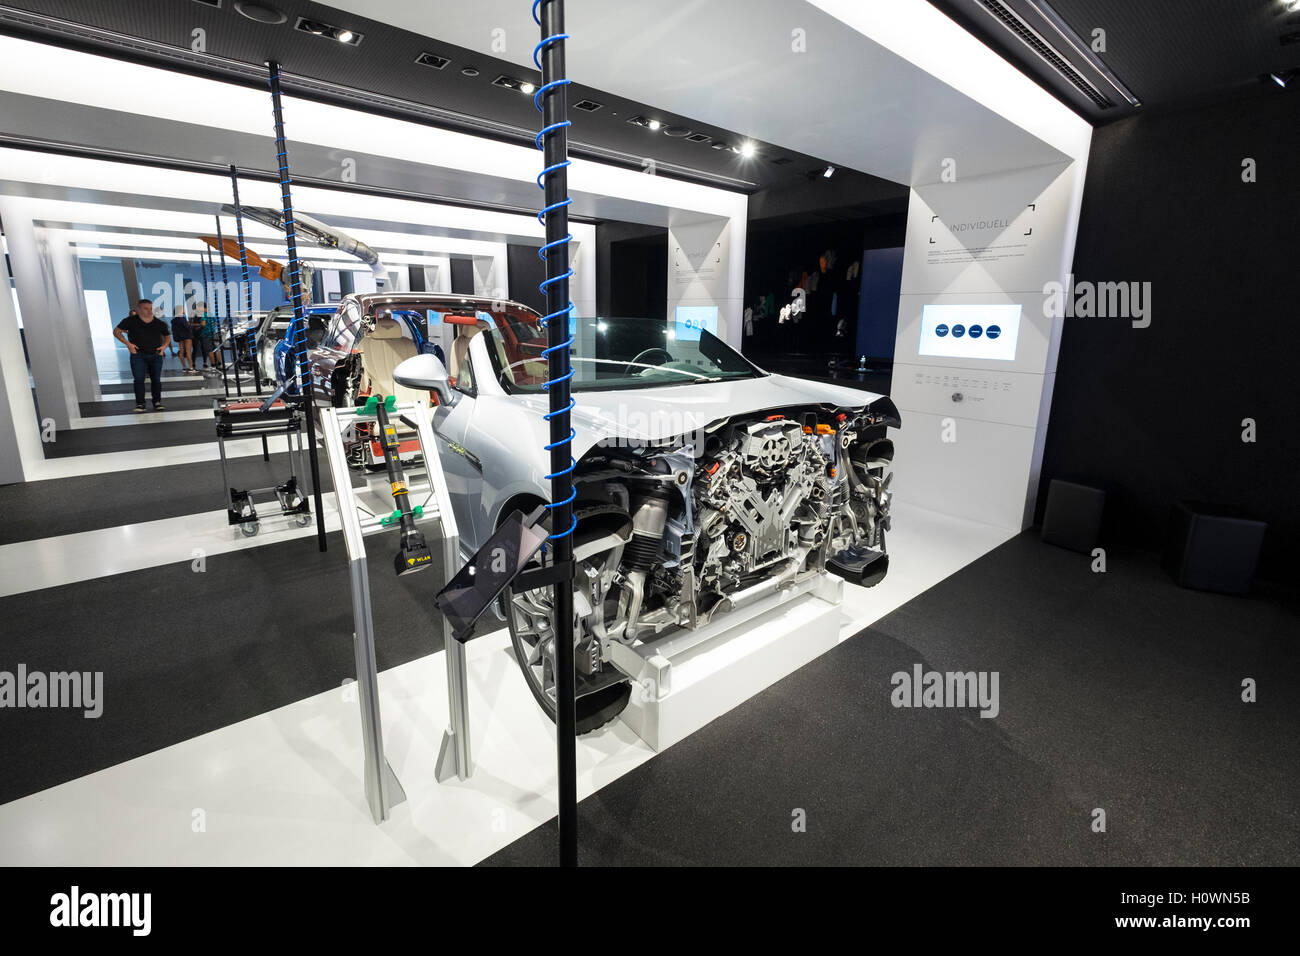 Display of modern car manufacture and assembly production line at VW Volkswagen Visitor Centre at Autostadt in Wolfsburg, - Stock Image